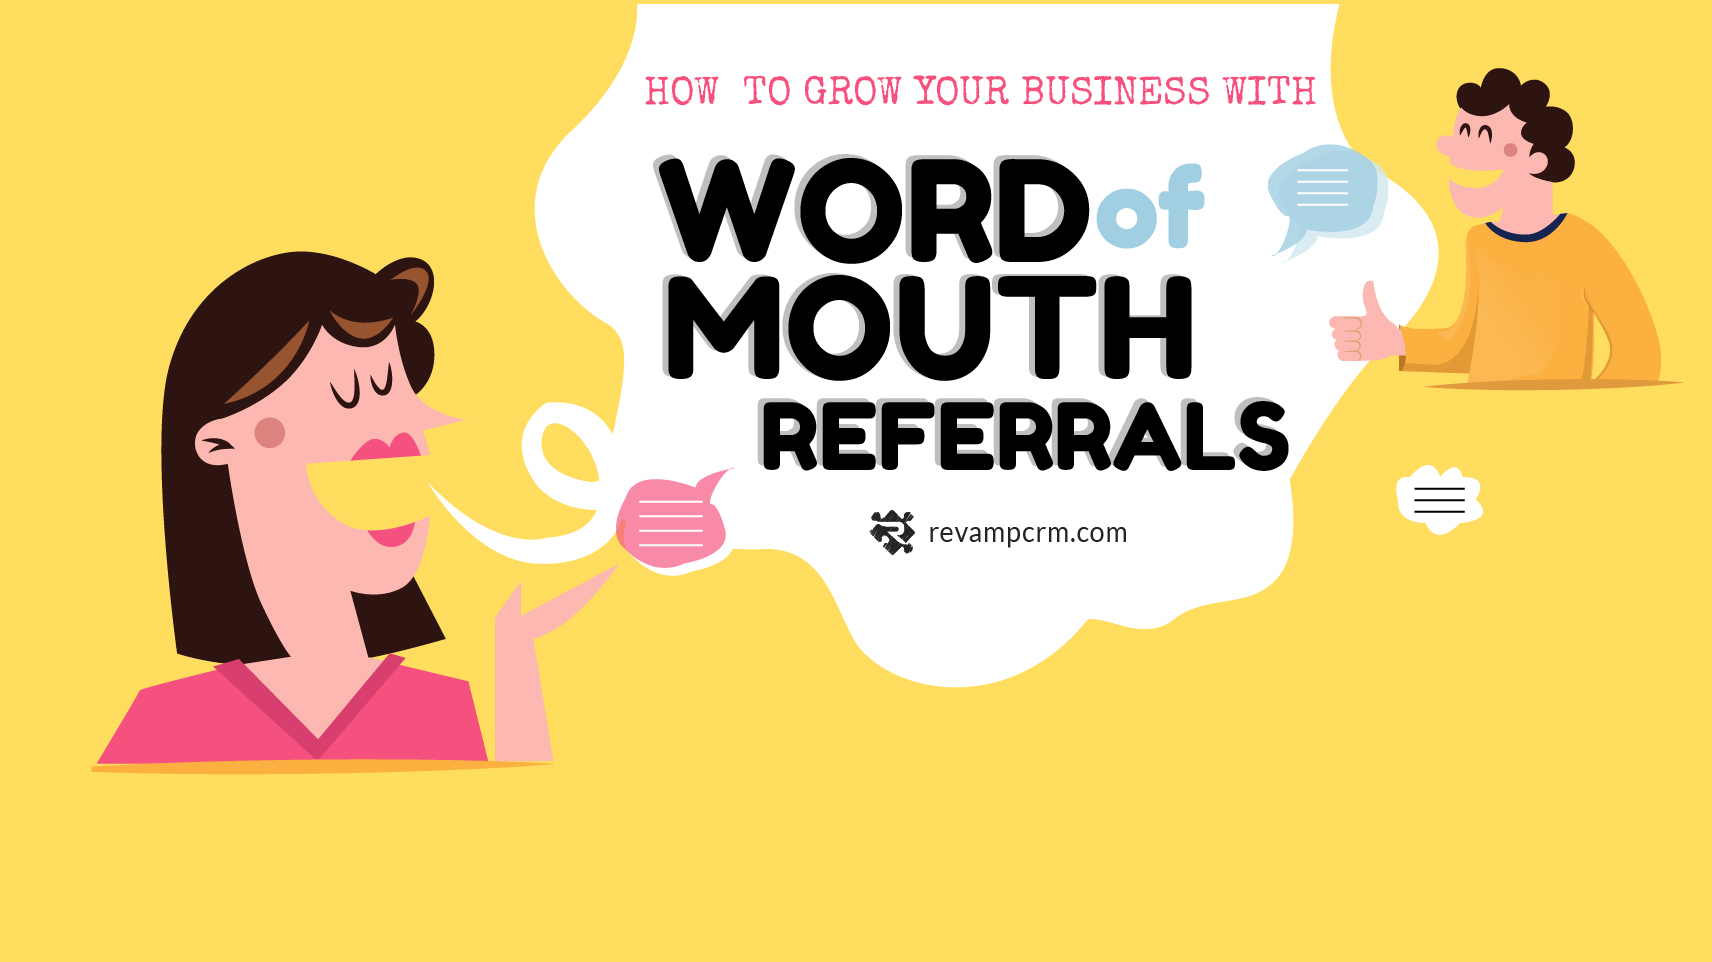 How to Grow Your Business With Word-Of-Mouth Referrals (WOM) [ infographic ]